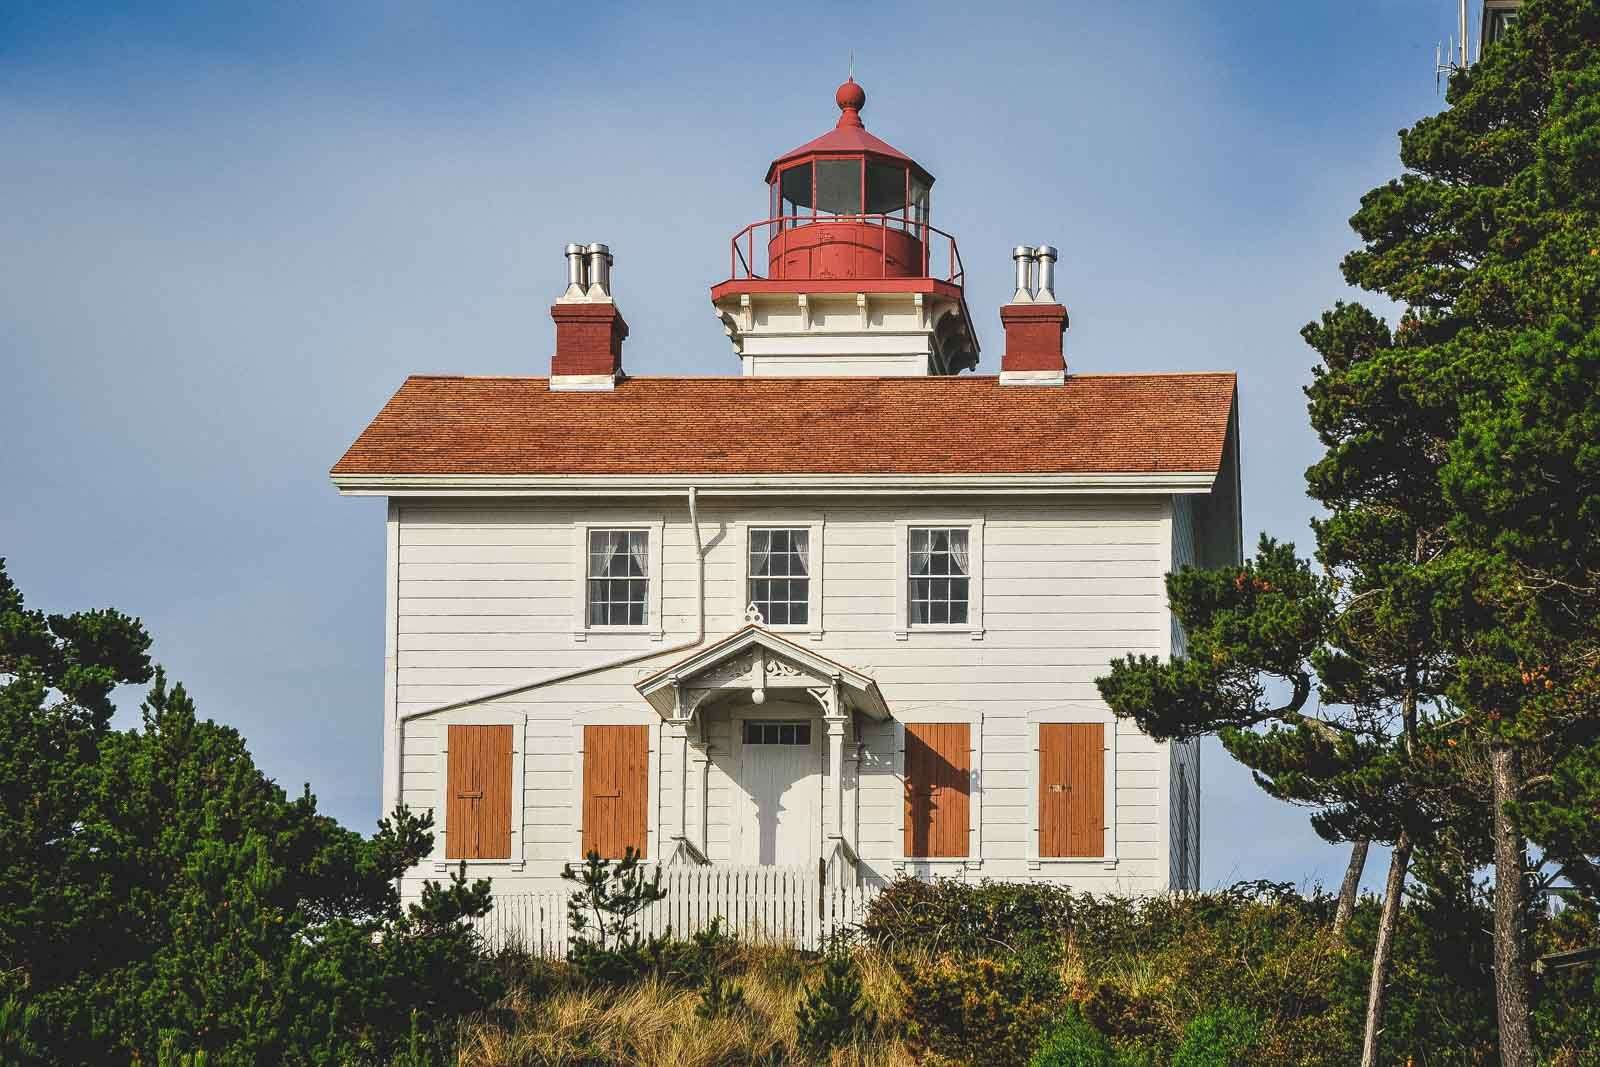 Yaquina Bay Lighthouse in Yaquina Bay State Park, one of the Oregon Coast State Parks